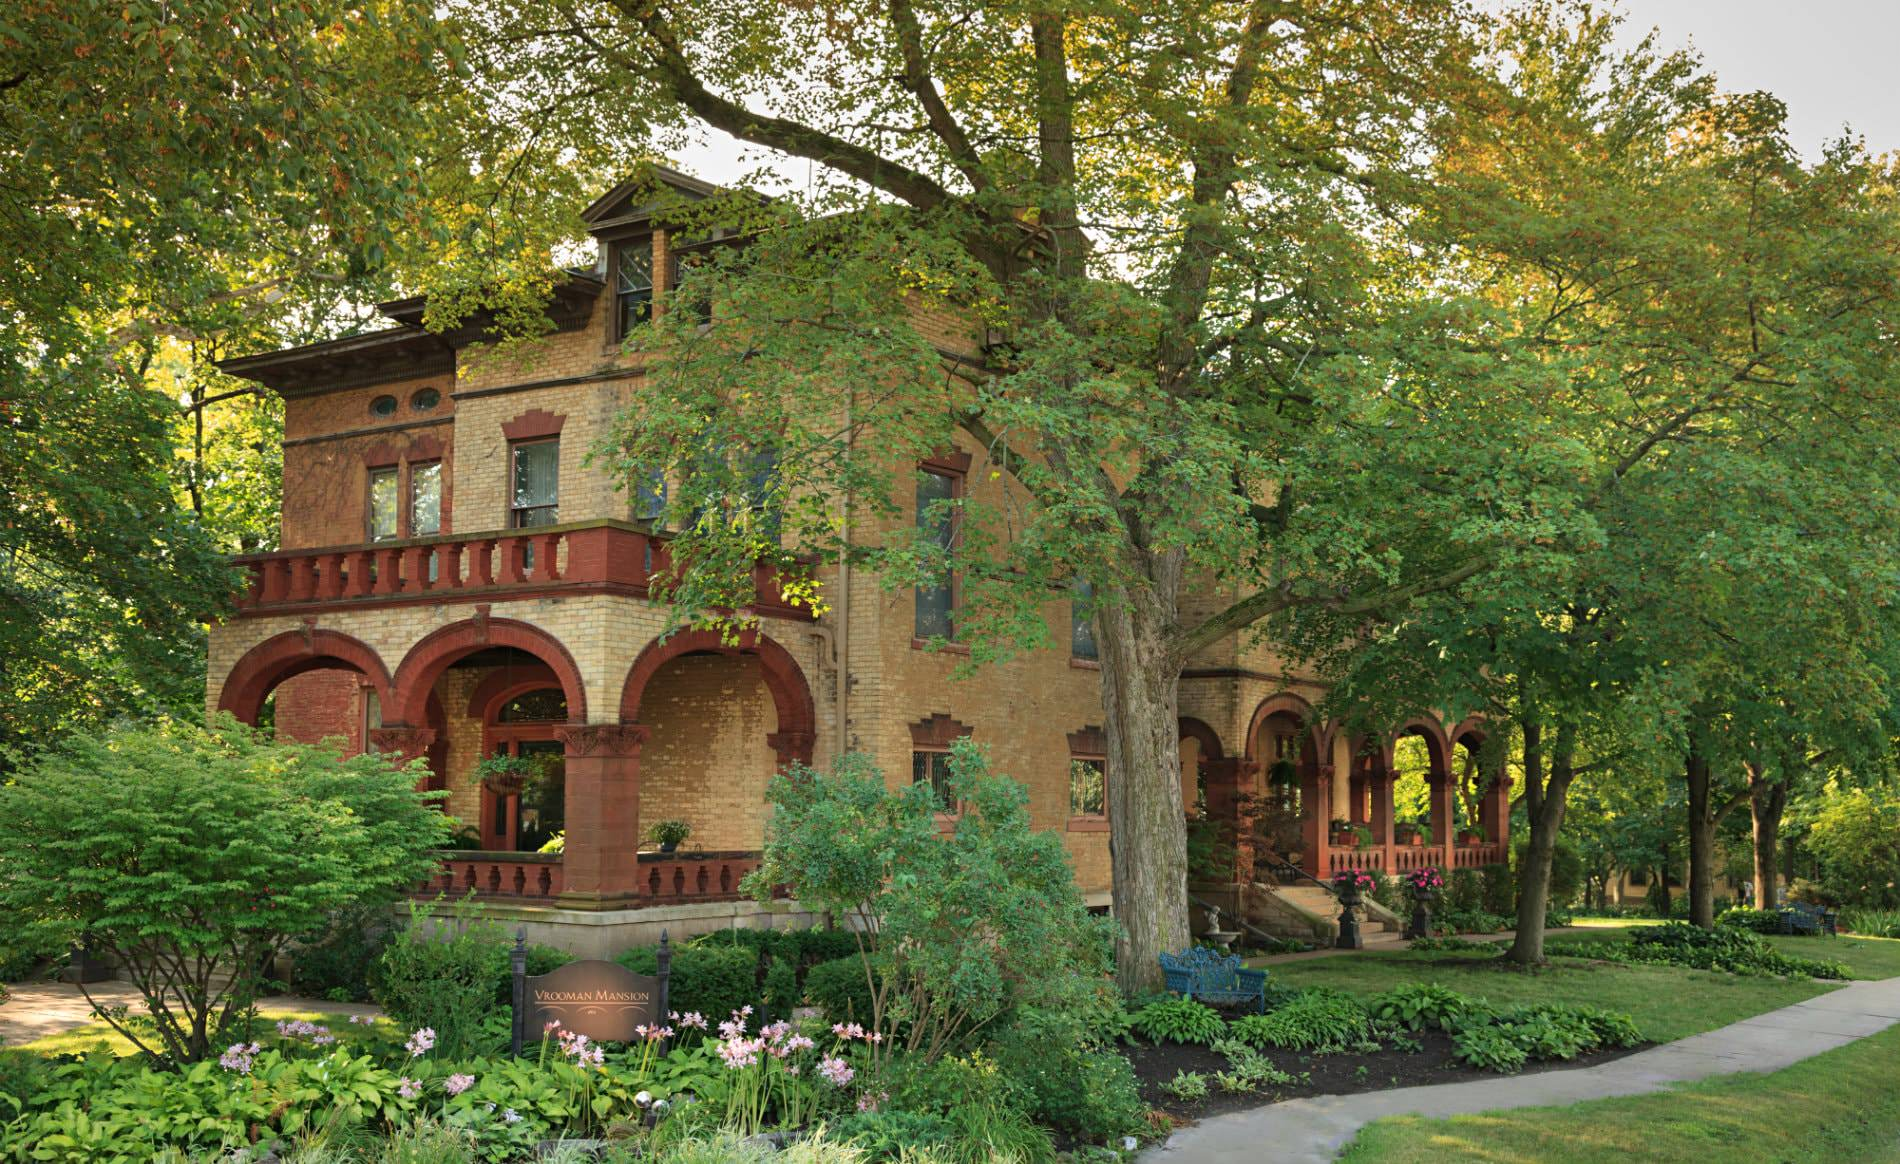 Vrooman mansion with arched covered porches and arch windows and doors surrounded by green plants, grass and trees